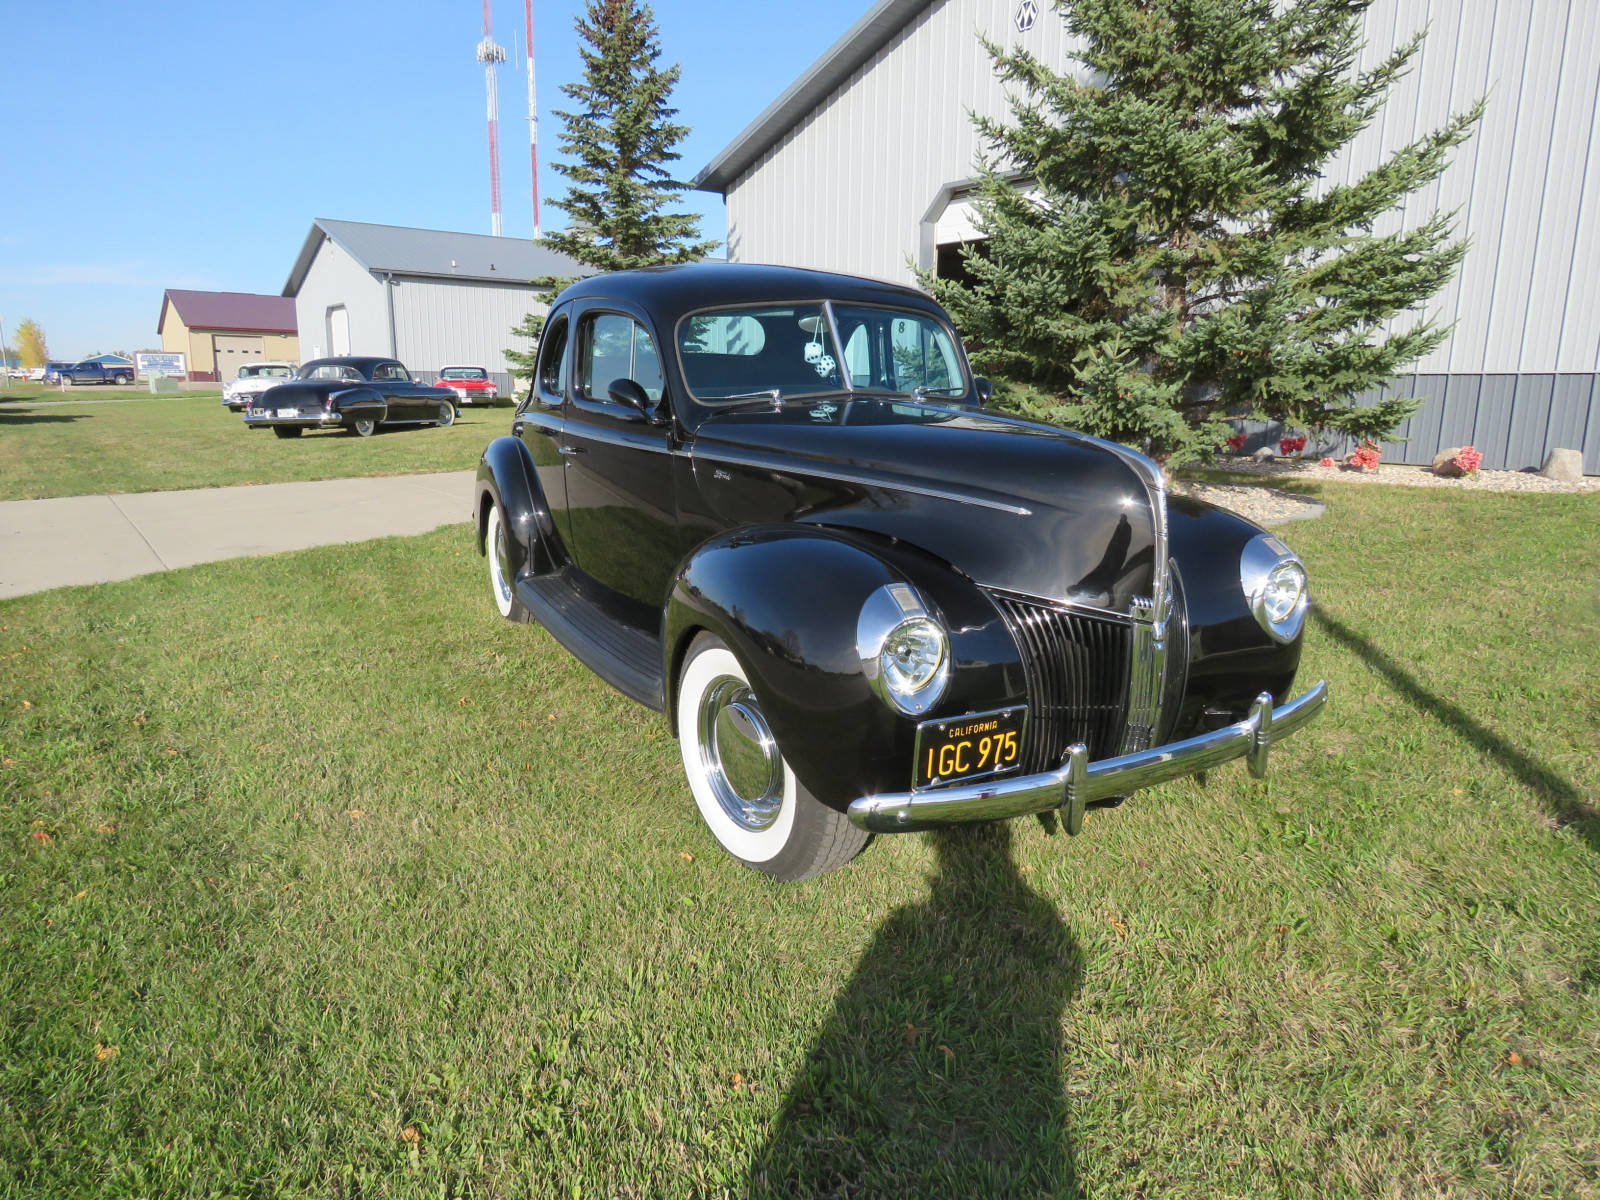 Beautiful 1940 Ford Coupe - Image 1